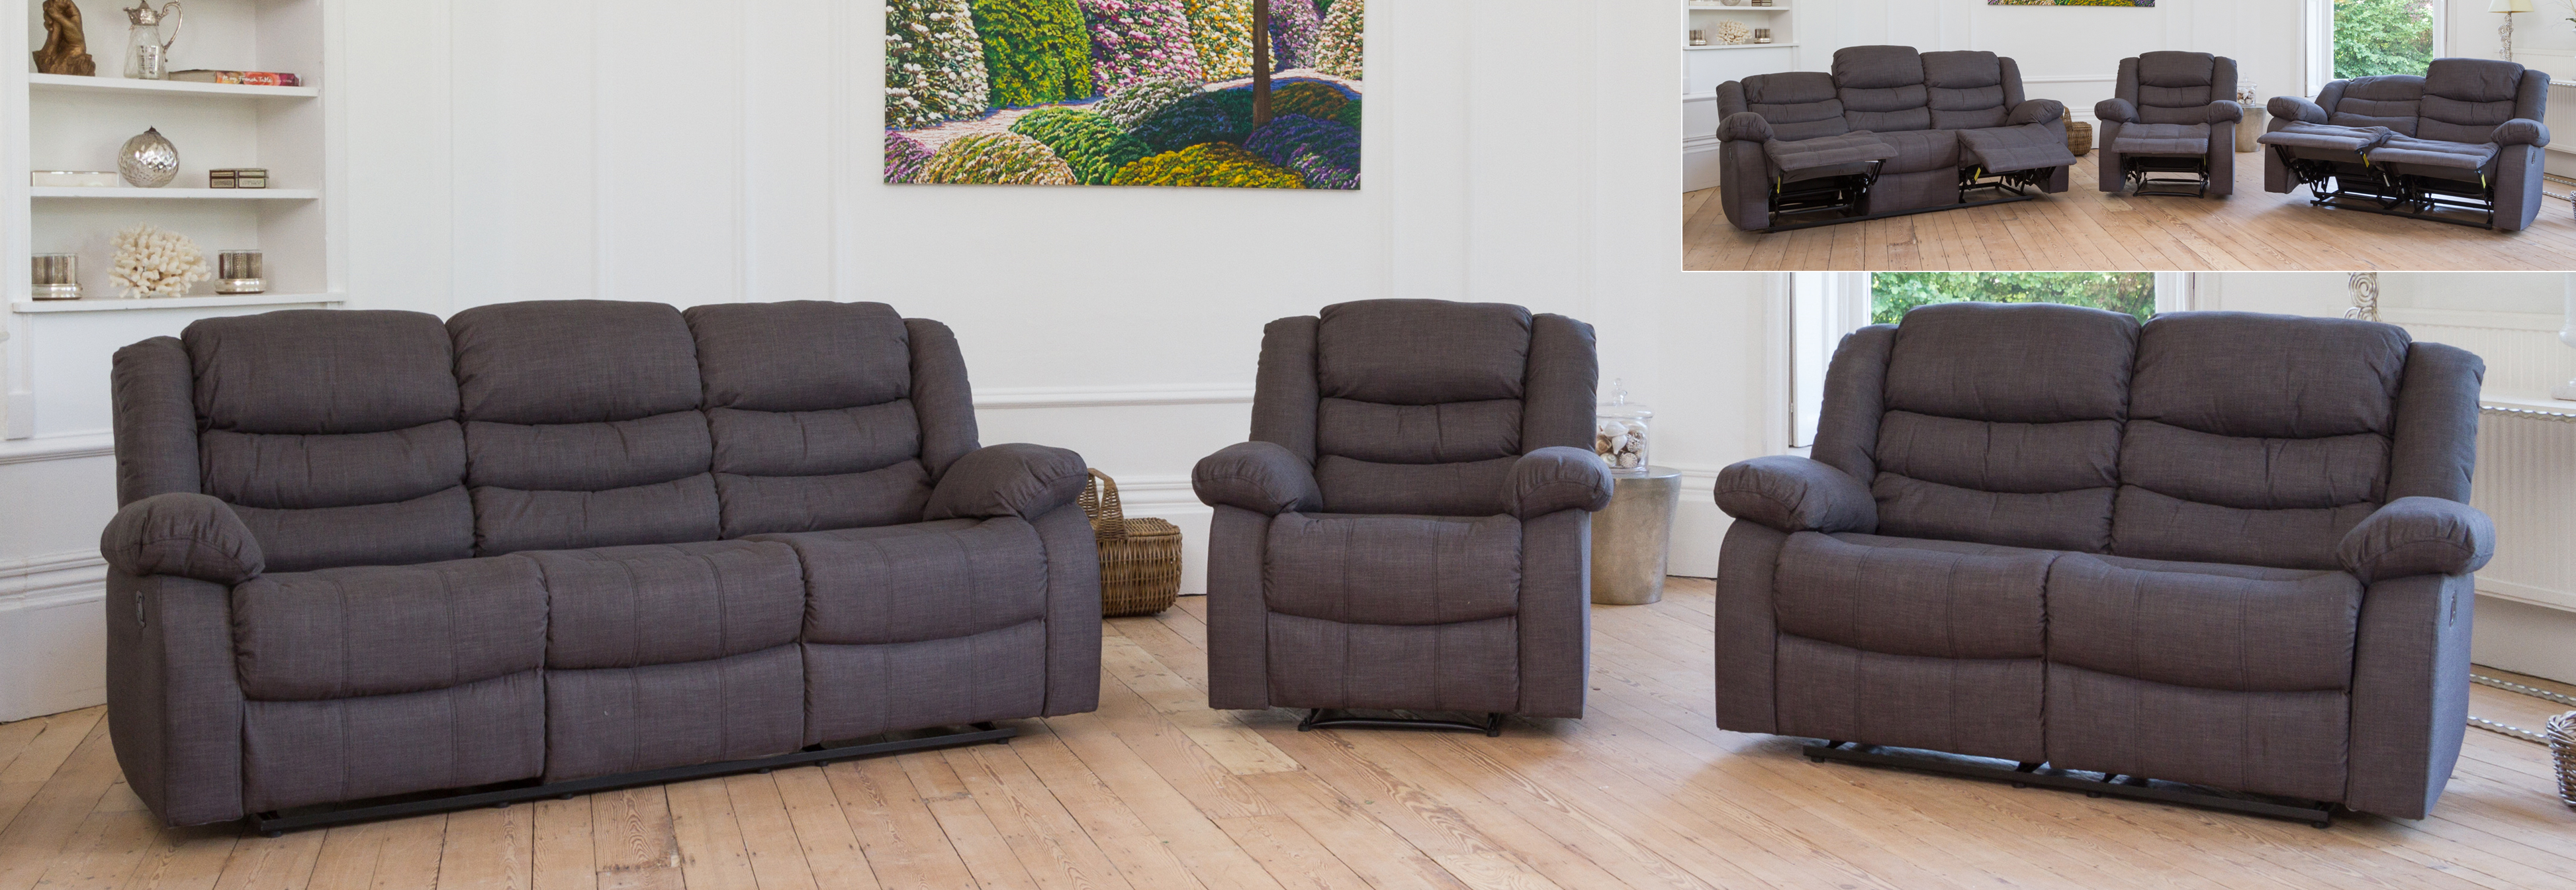 Gainsborough Reclining Suite dark grey